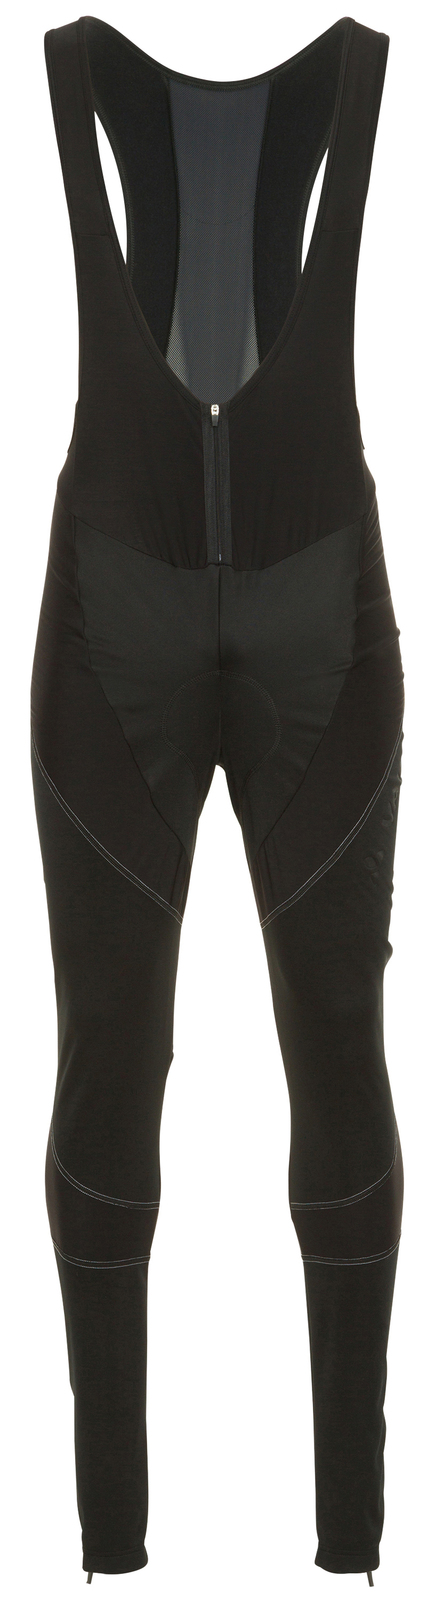 VAUDE Men´s Pro Warm Pants black Größe S - schneider-sports